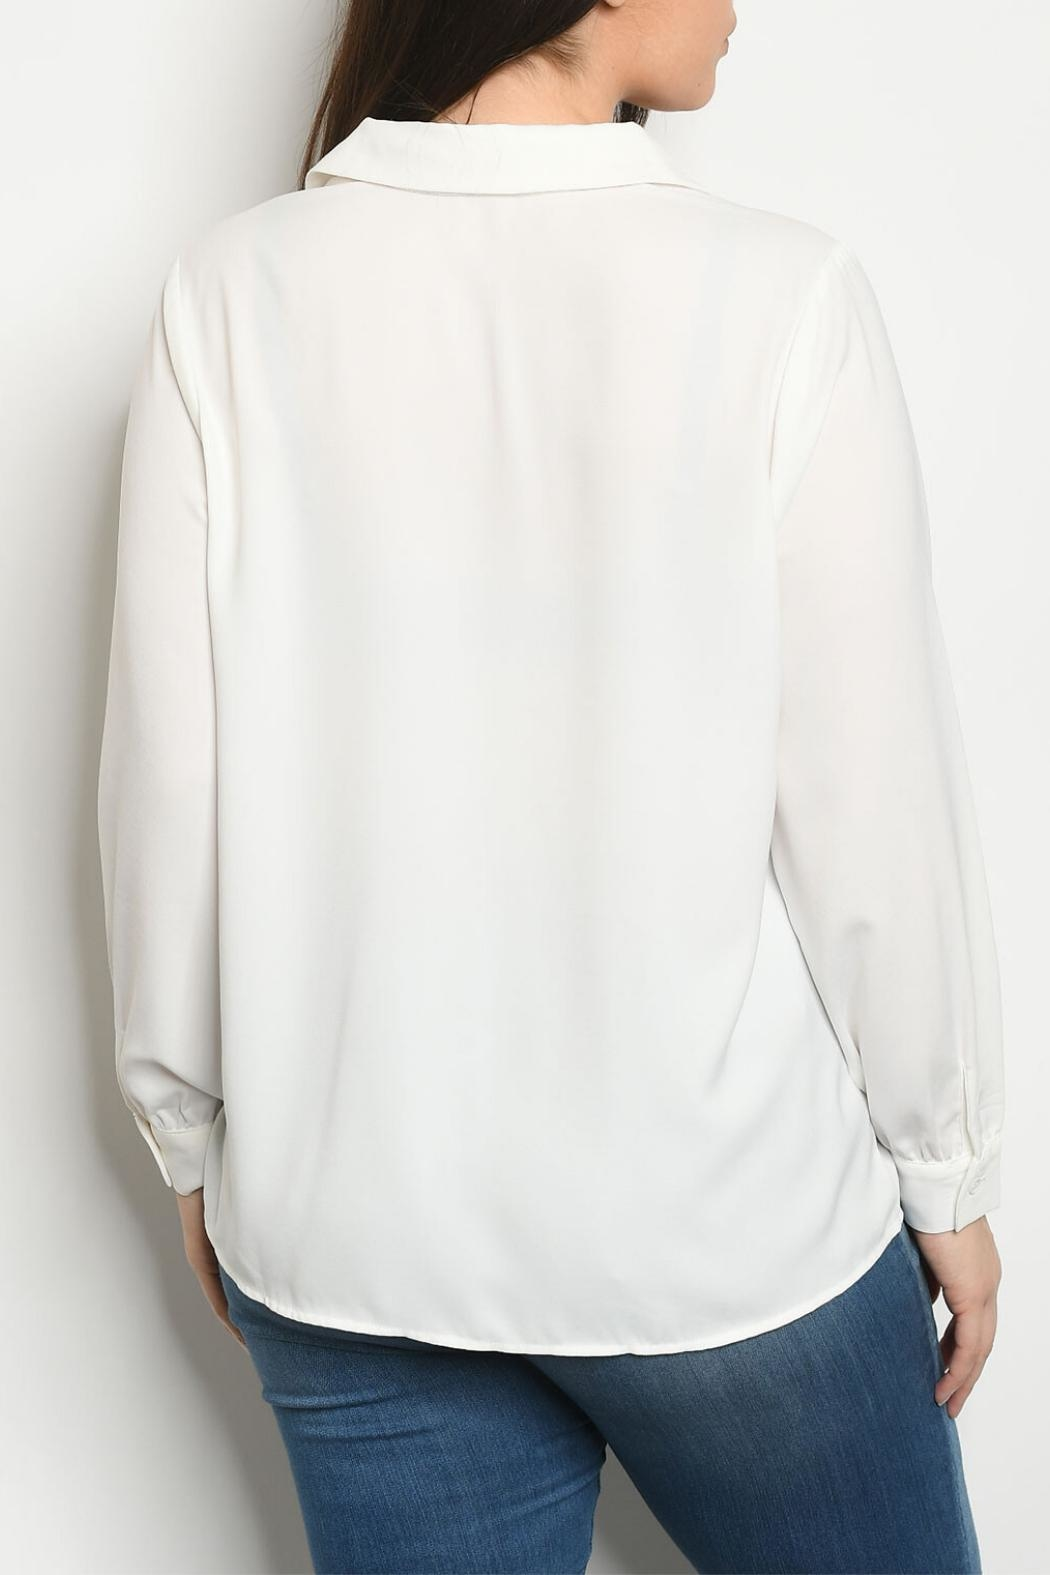 Gilli Off White Top - Front Full Image